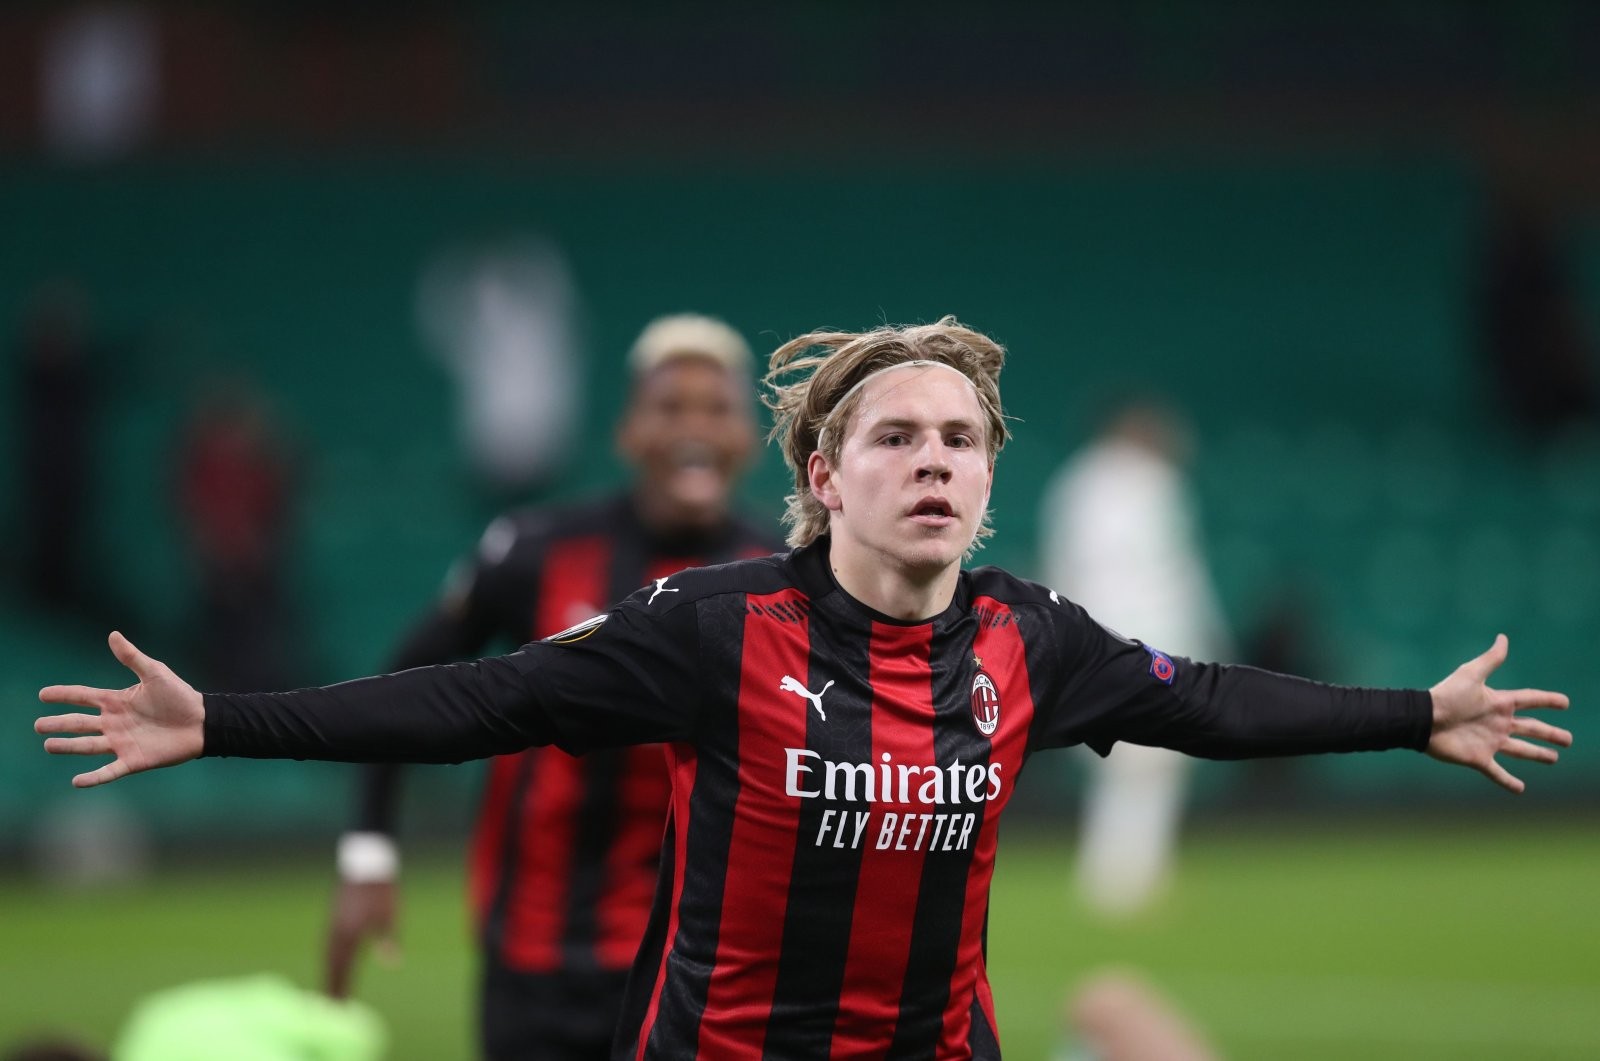 AC Milan's Jens Petter Hauge celebrates a goal during a Europa League match, in Glasgow, Scotland, Oct. 22, 2020. (AFP Photo)